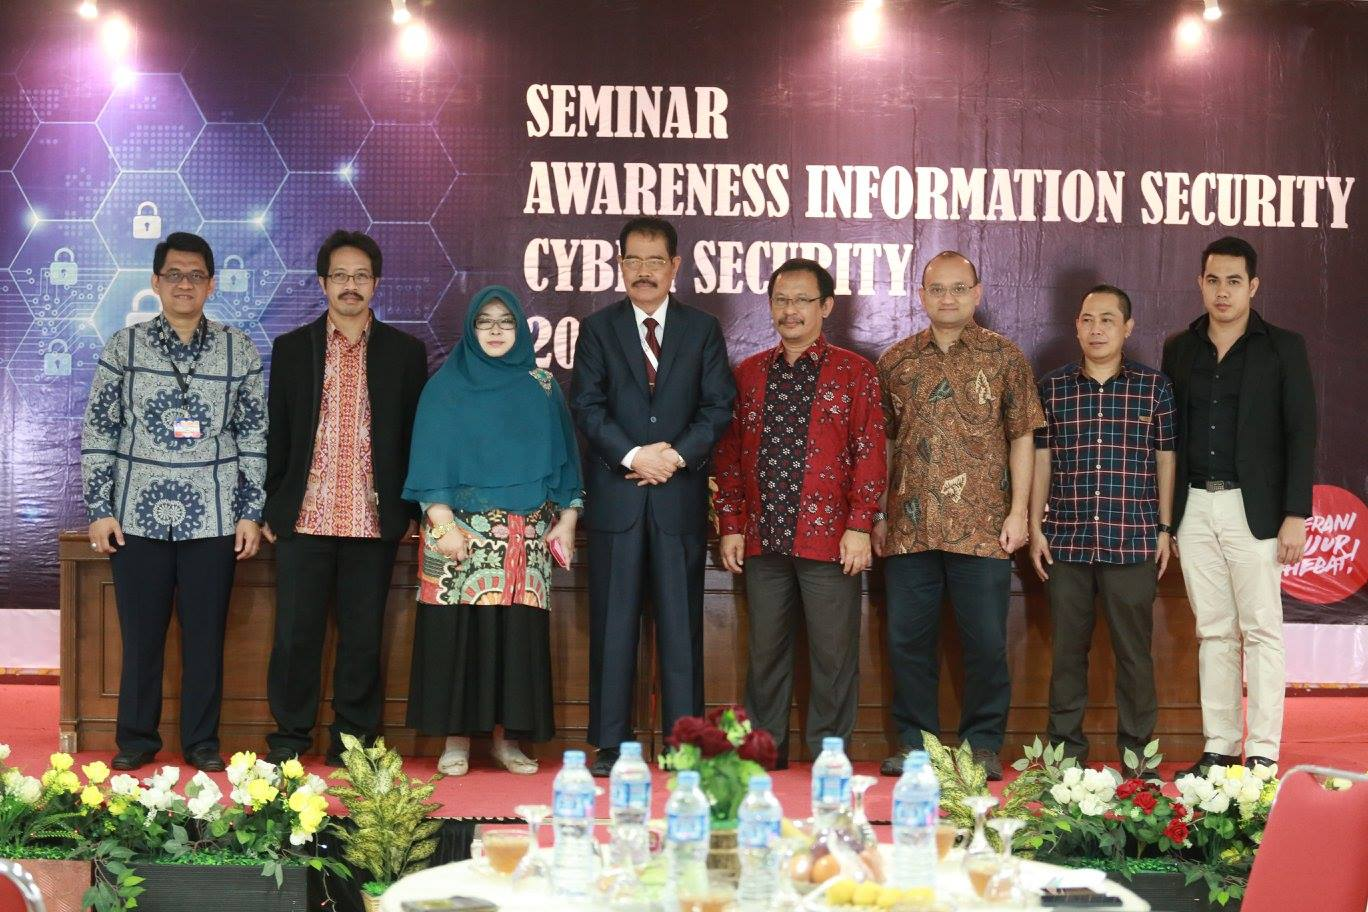 Seminar Awareness Information Security Cyber Security 2016